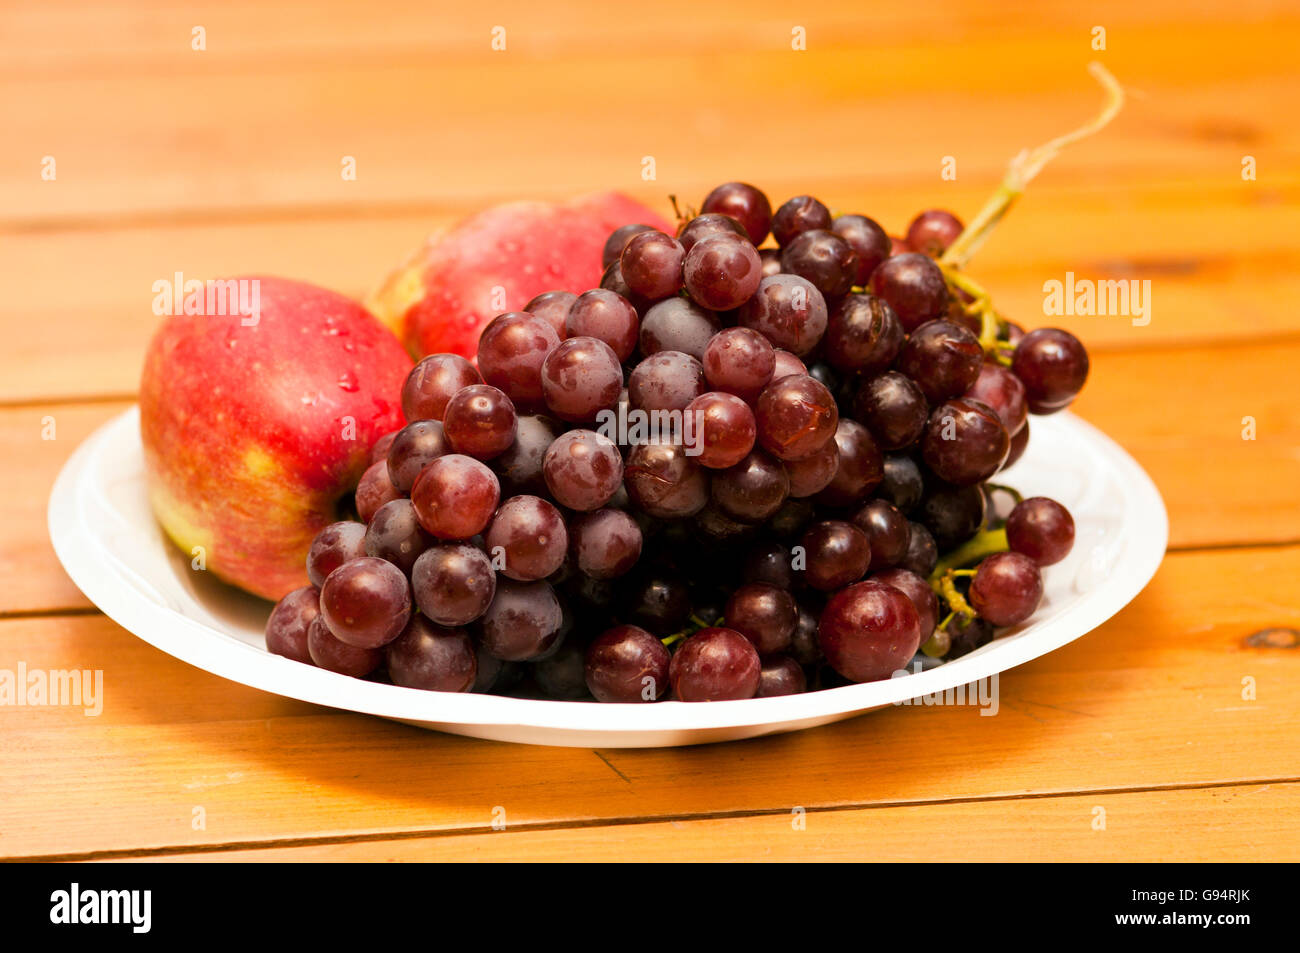 Apple and Grape Fruit Plate - Stock Image